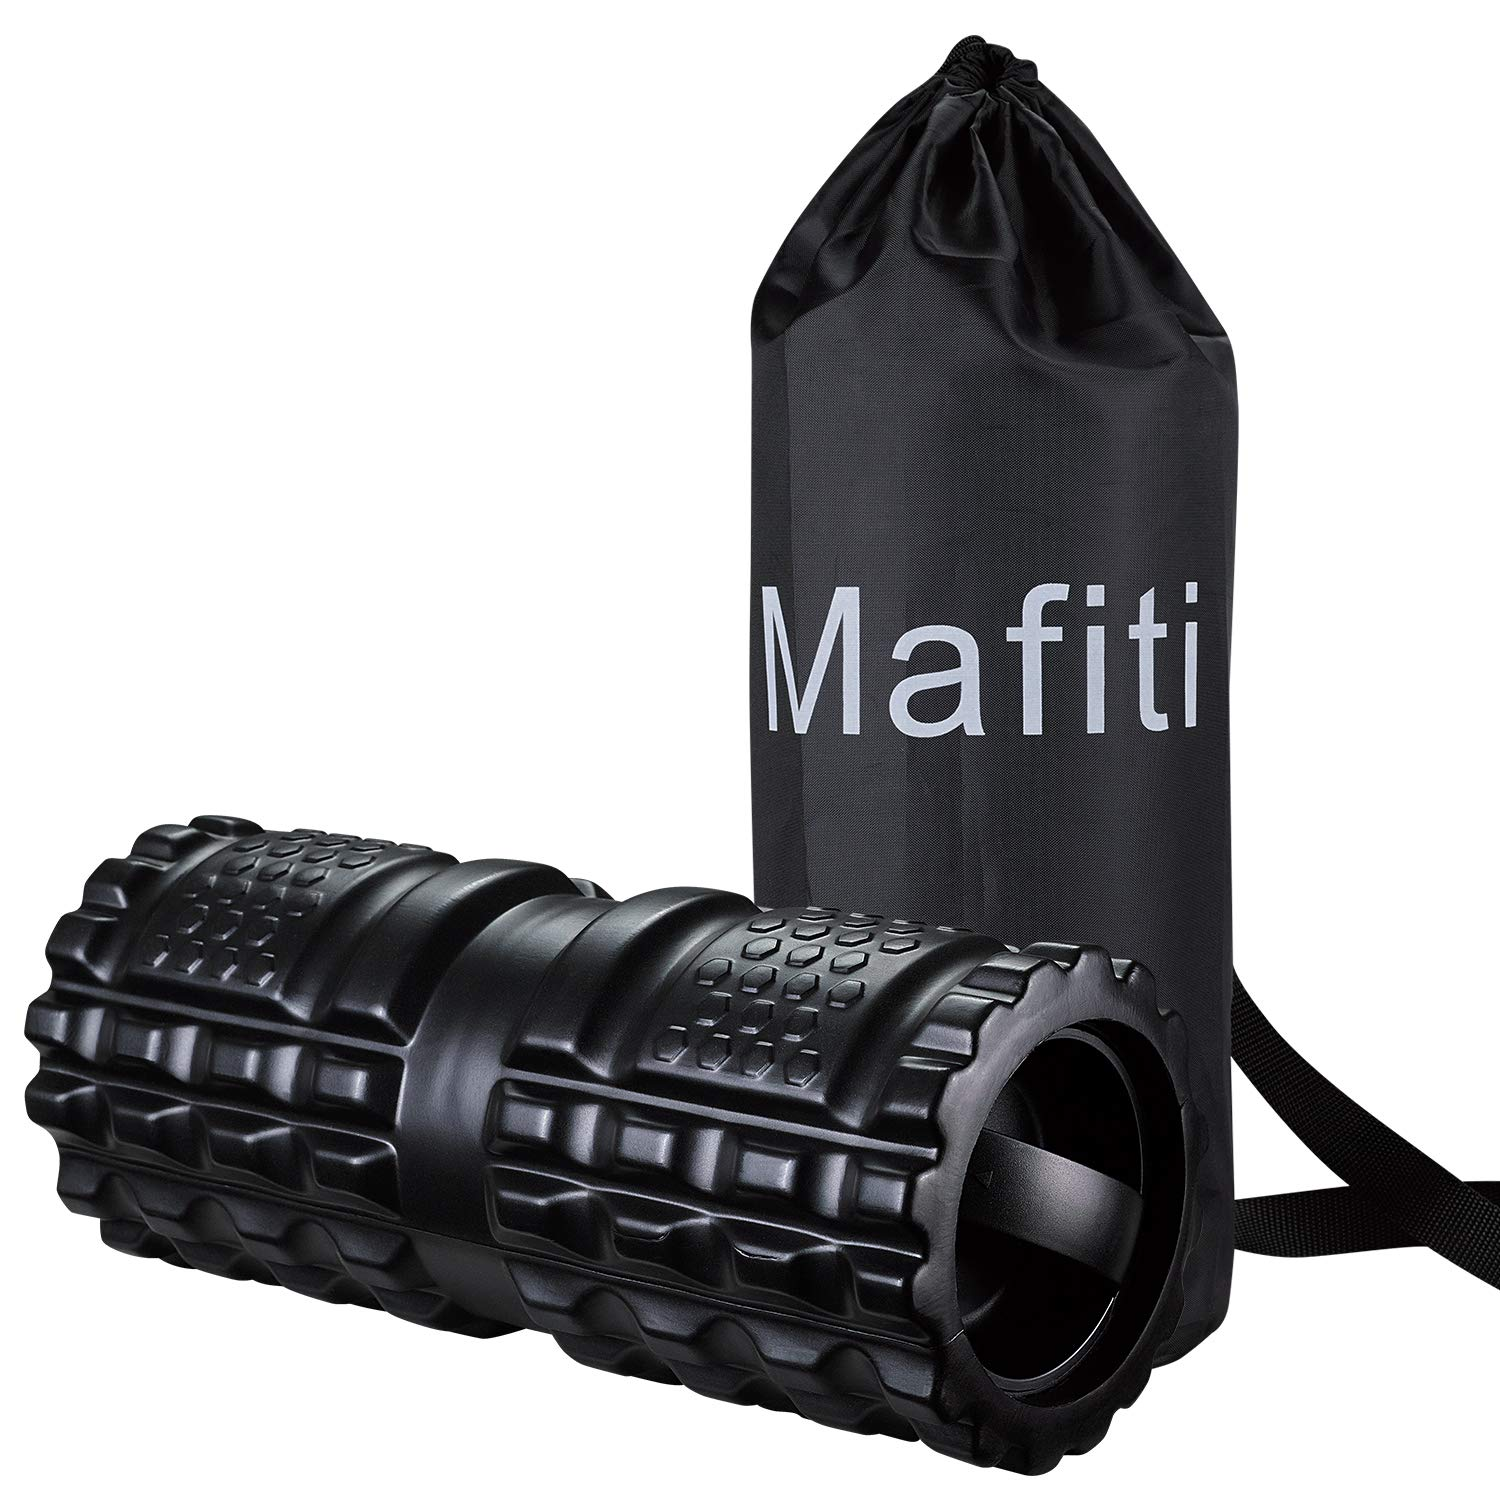 mafiti 3 Speed Vibrating Yoga Foam Roller High Density Trigger Point Electric Massager for Myofascial Recovery Sore Muscle Deep Tissue Therapy